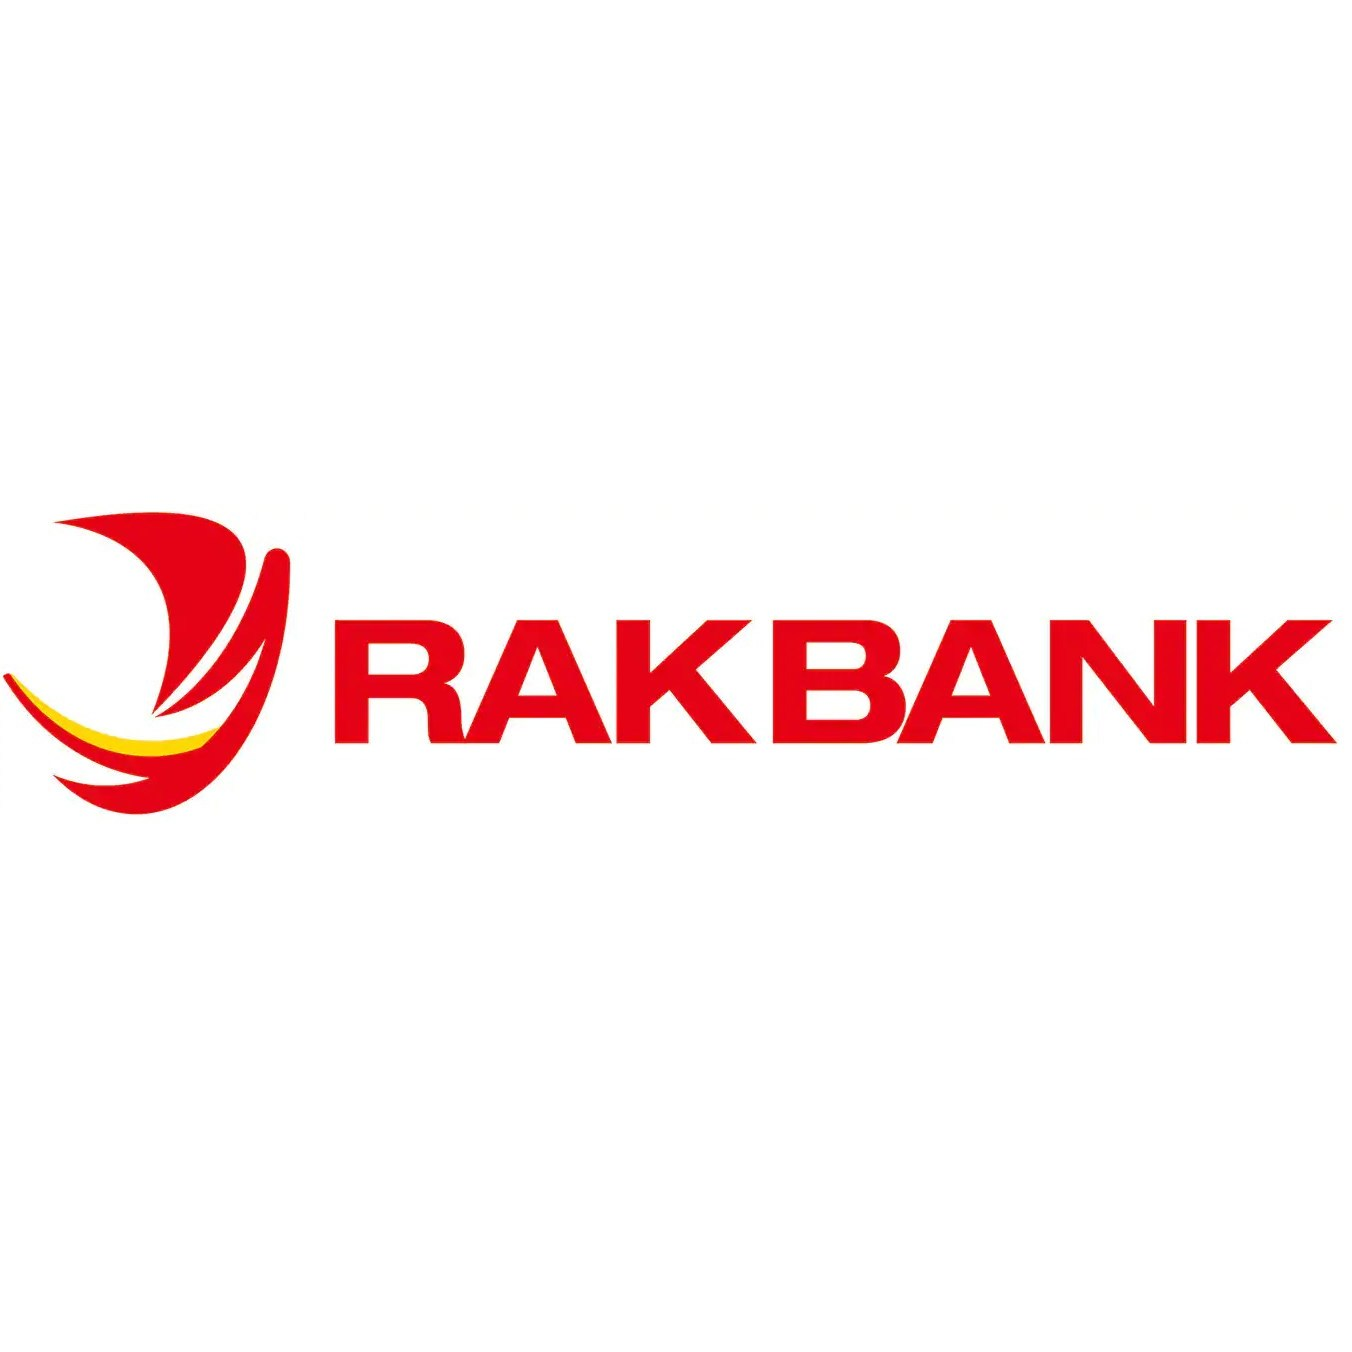 RAKBANK - RAKvantage Savings Account